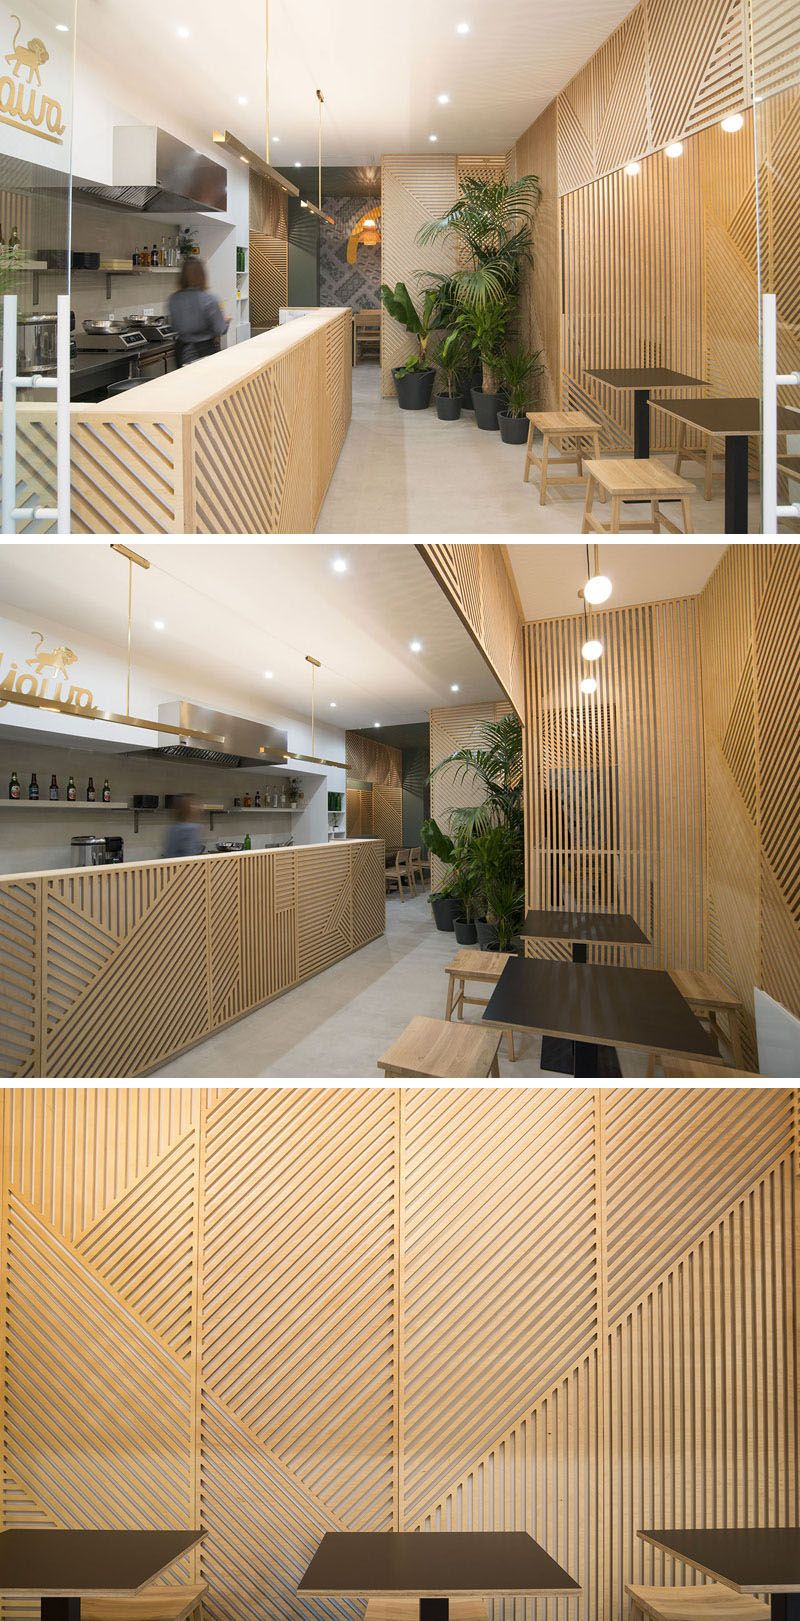 Wall Decor Idea – This Restaurant Covered Its Walls With With Regard To Abstract Bar And Panel Wall Decor (Image 29 of 30)